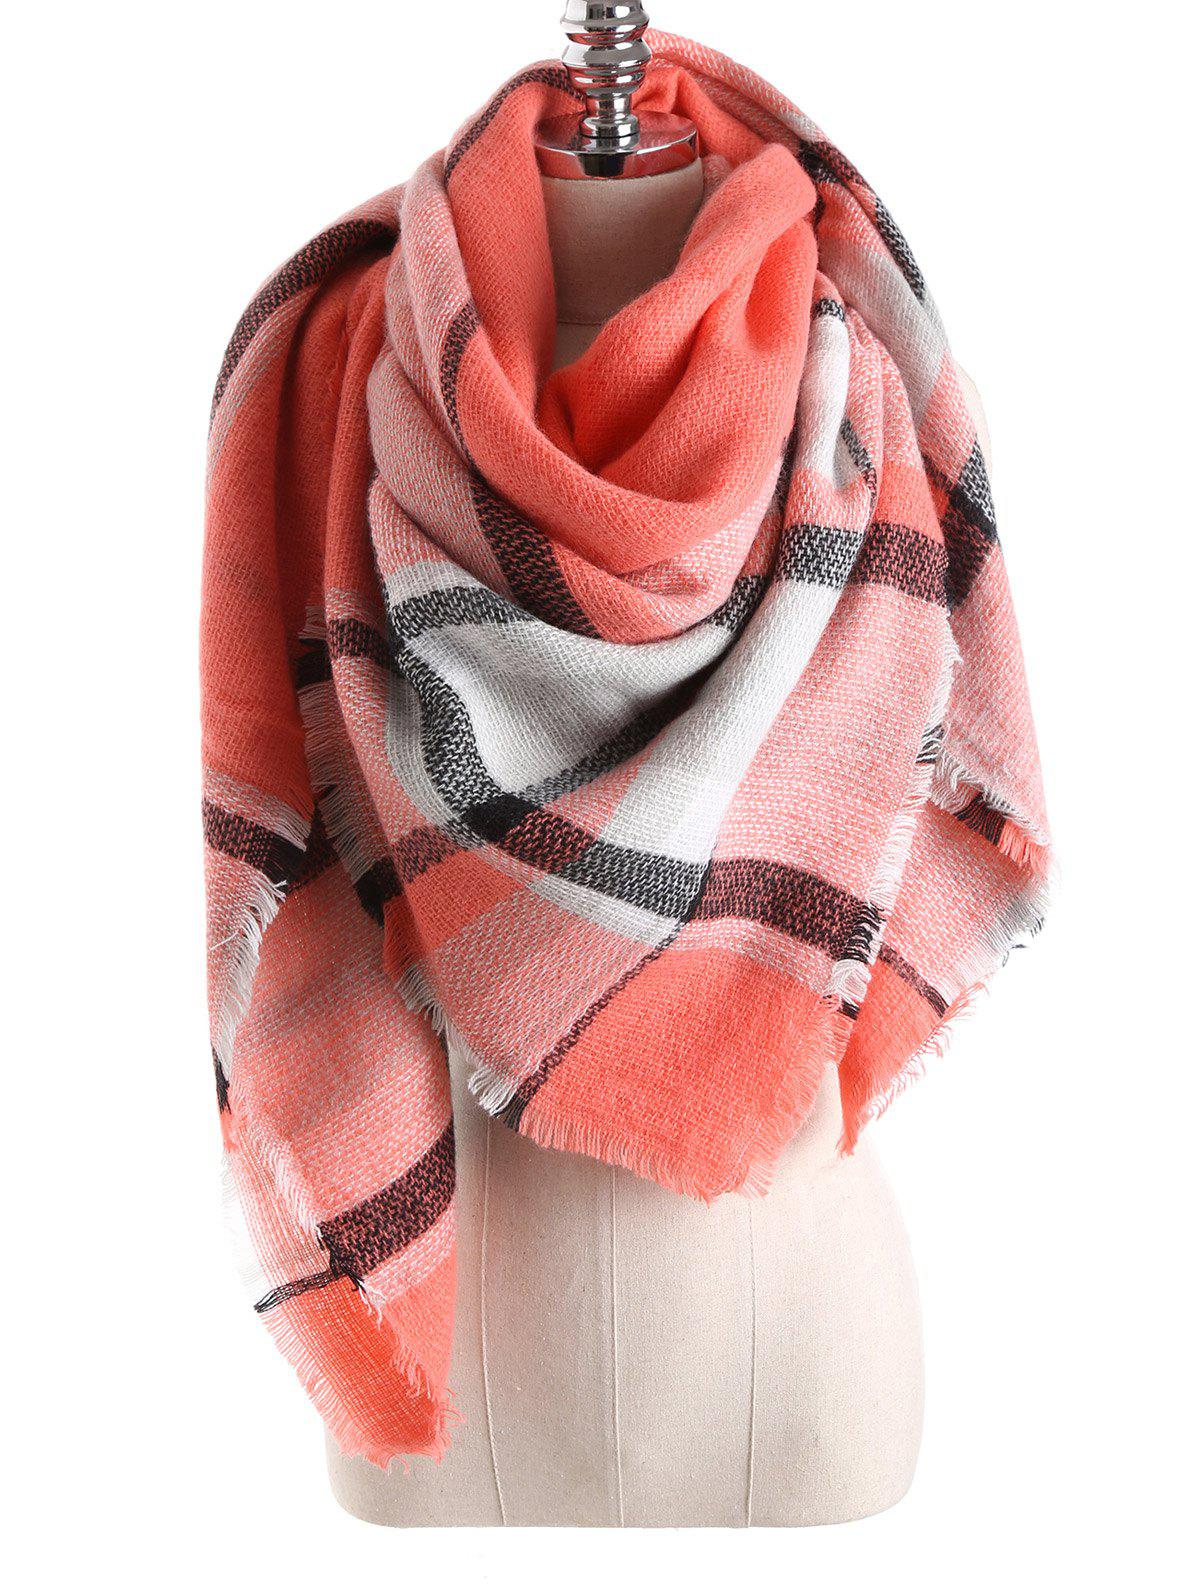 Warm Tartan Plaid Blanket Shawl ScarfACCESSORIES<br><br>Color: ORANGEPINK; Scarf Type: Scarf; Group: Adult; Gender: For Women; Style: Fashion; Material: Acrylic; Season: Fall,Winter; Scarf Length: 140CM; Scarf Width (CM): 140CM; Weight: 0.270kg; Package Contents: 1 x Scarf;